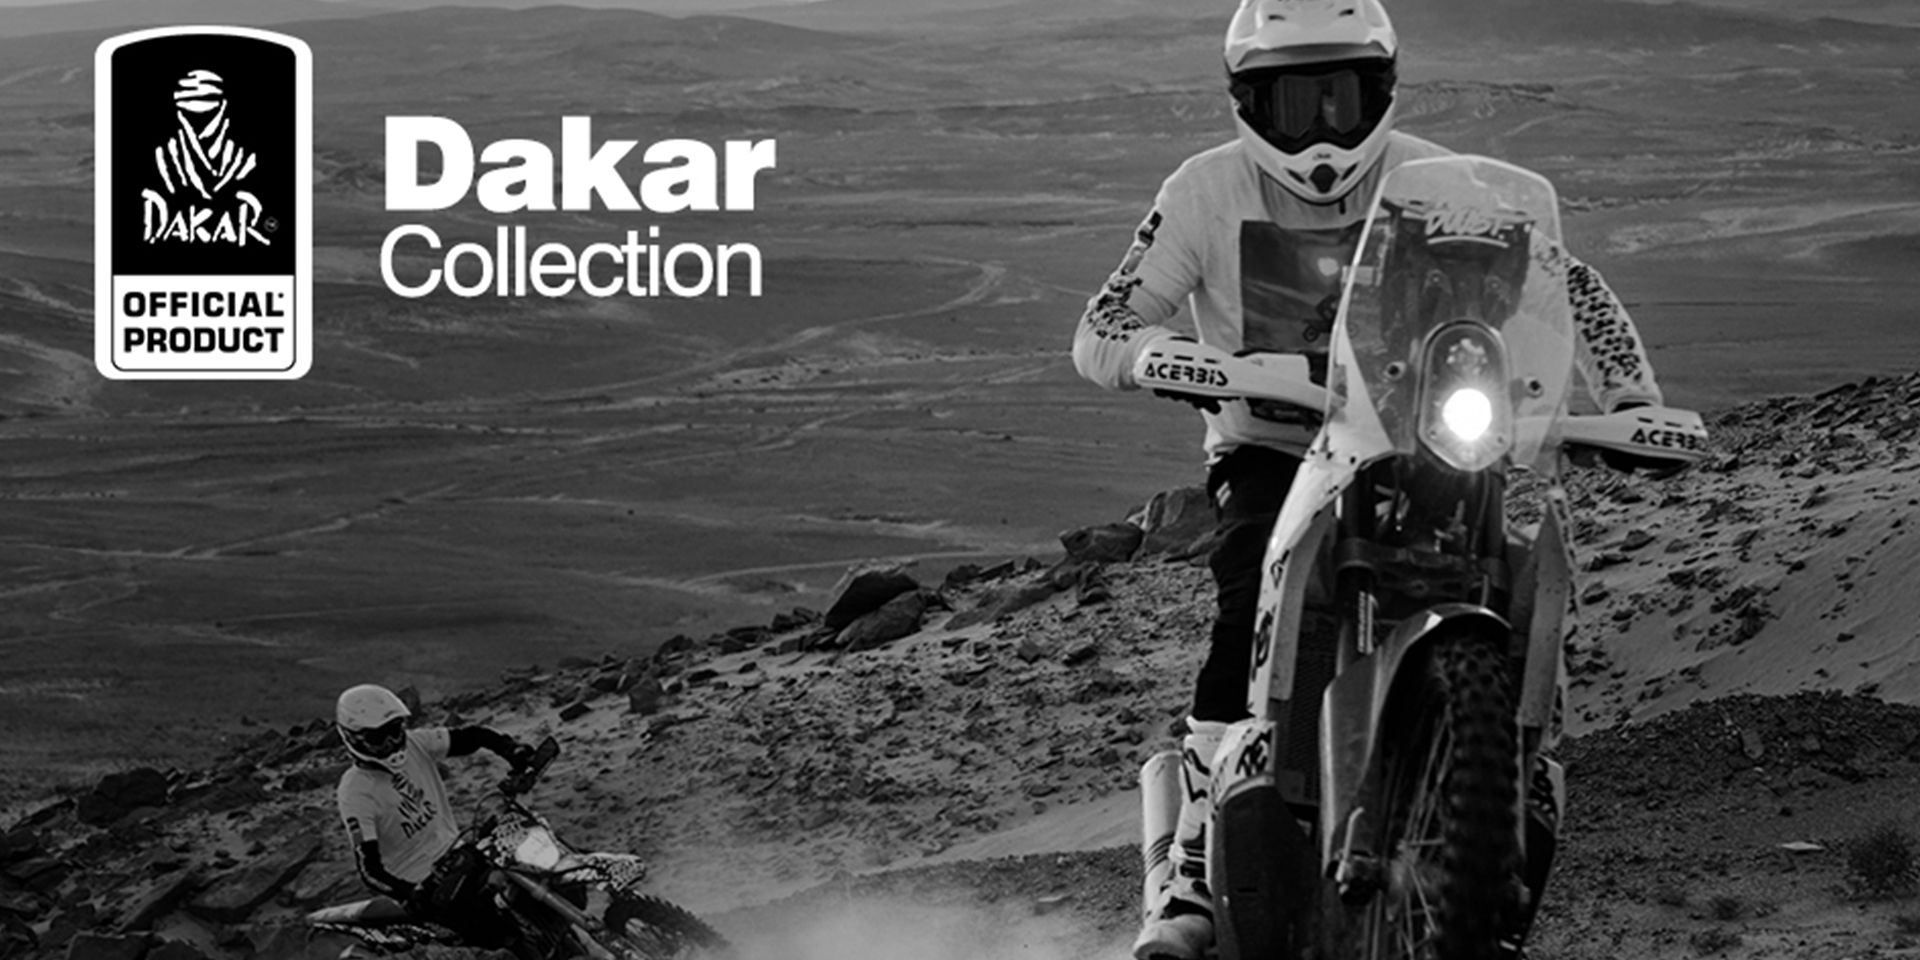 DAKAR Collection